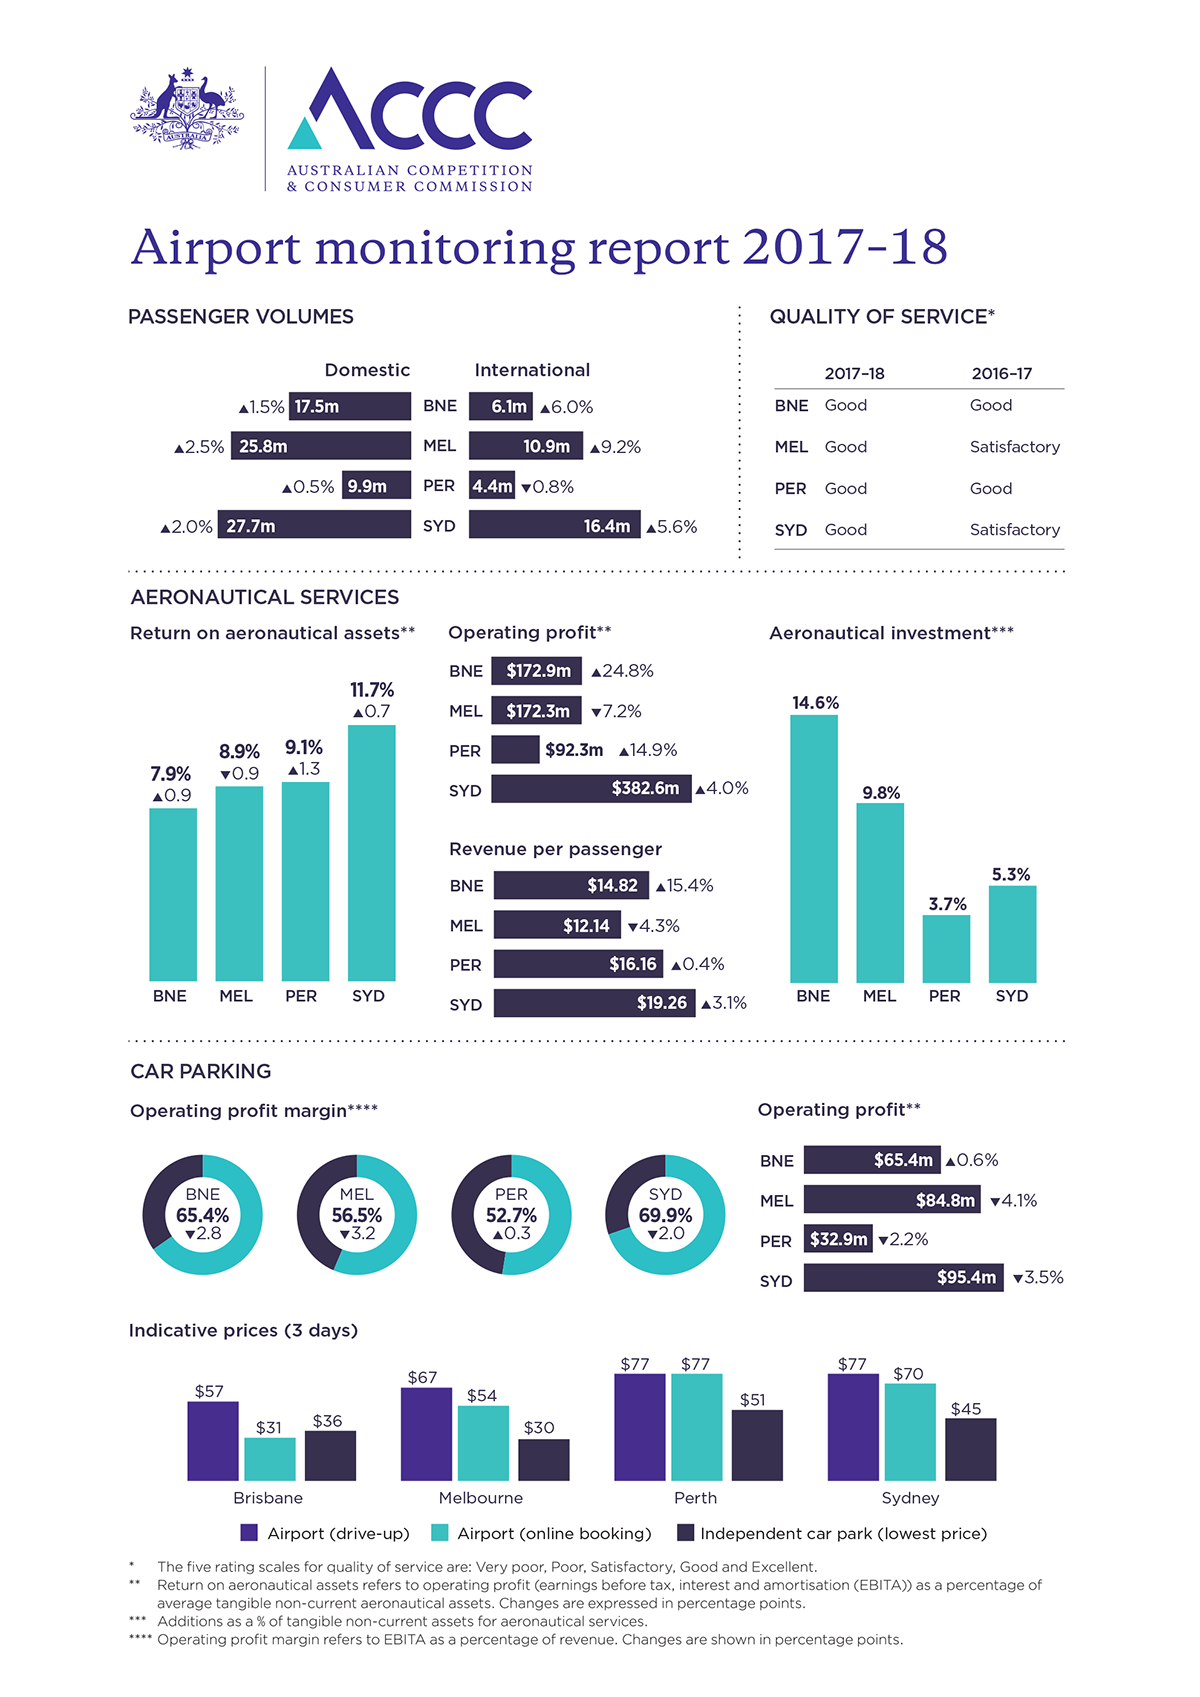 Airport monitoring report 2017-18